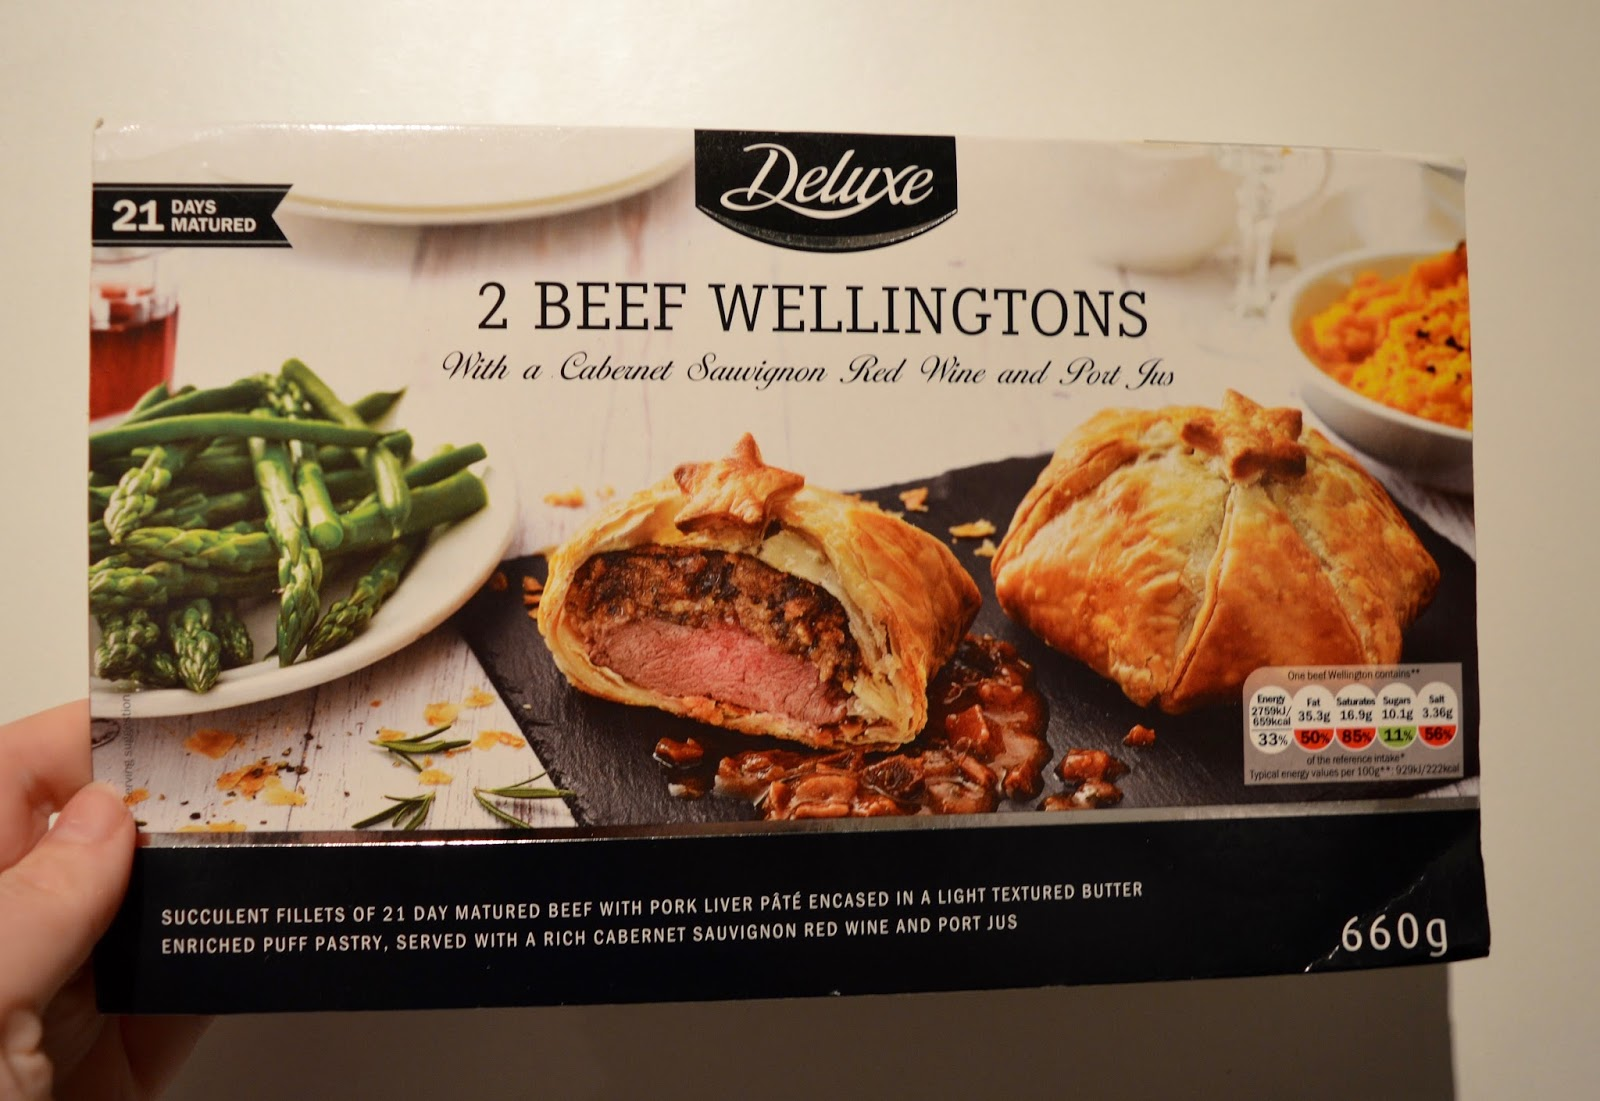 We review Christmas food at Lidl - Mains & Sides | What to Buy & What to Avoid - 2 Deluxe Beef Wellingtons